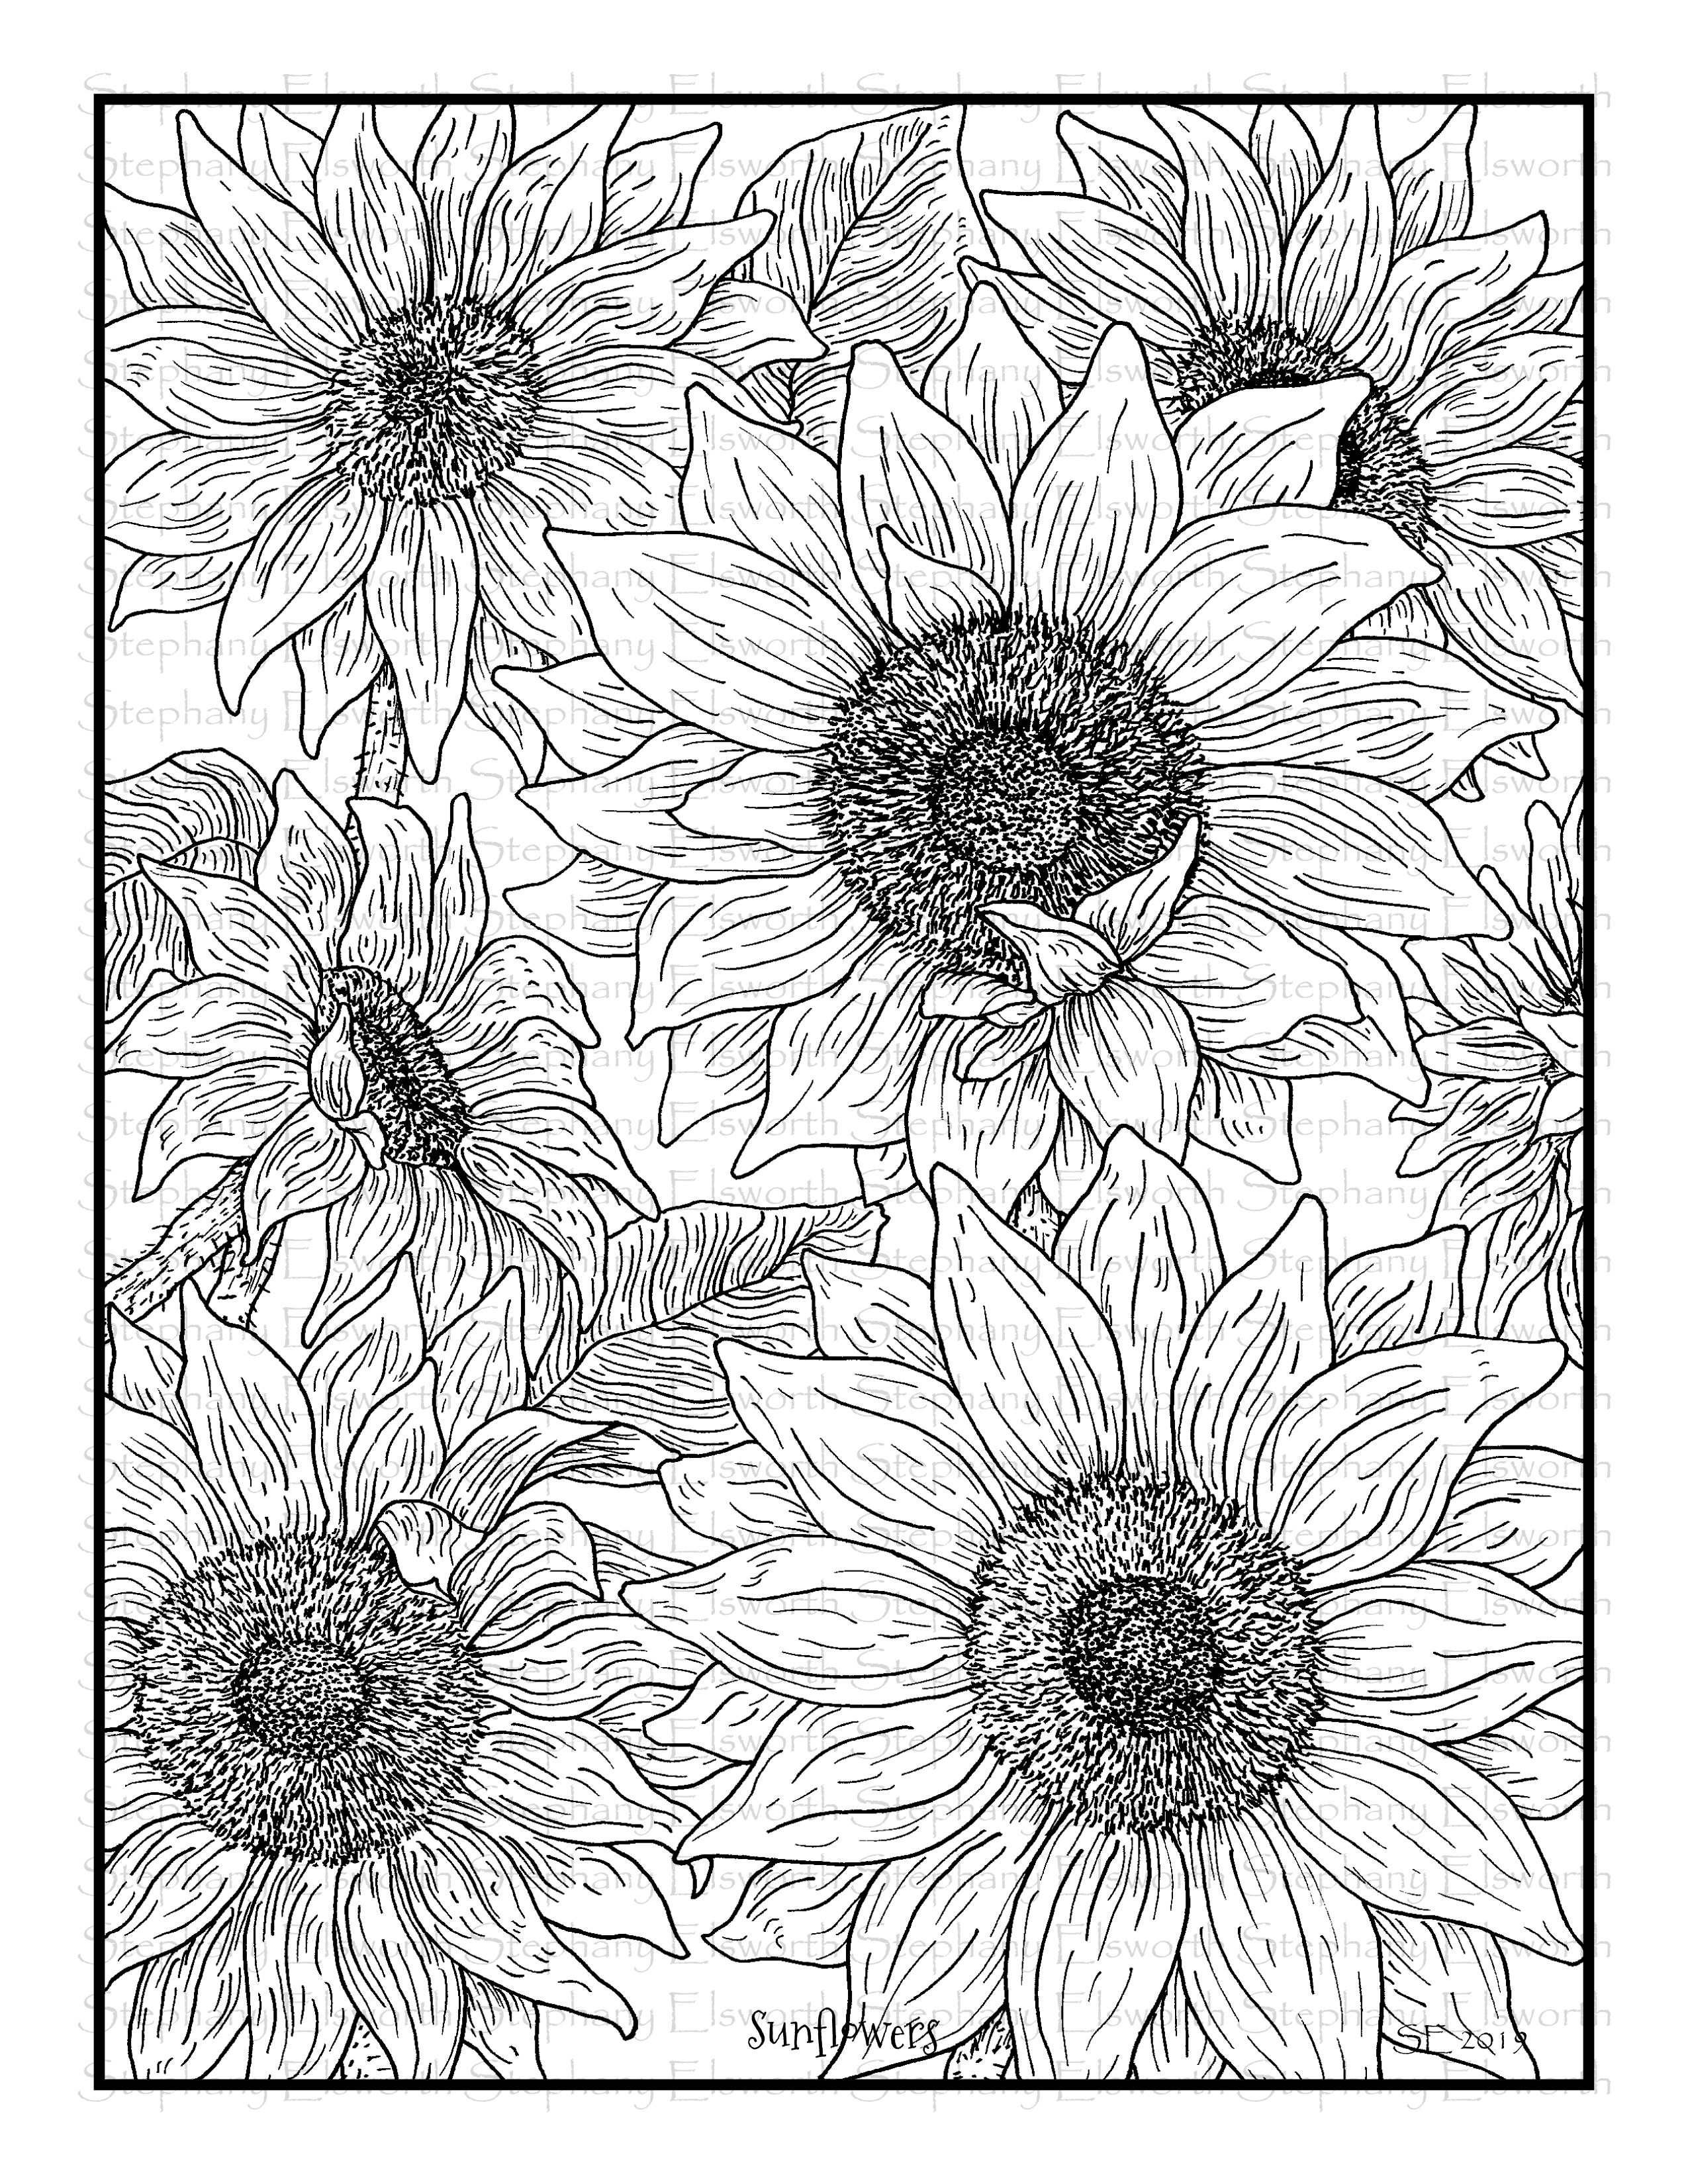 coloring sunflower picture sunflowers 8 12 x 11 printable coloring page color with sunflower coloring picture